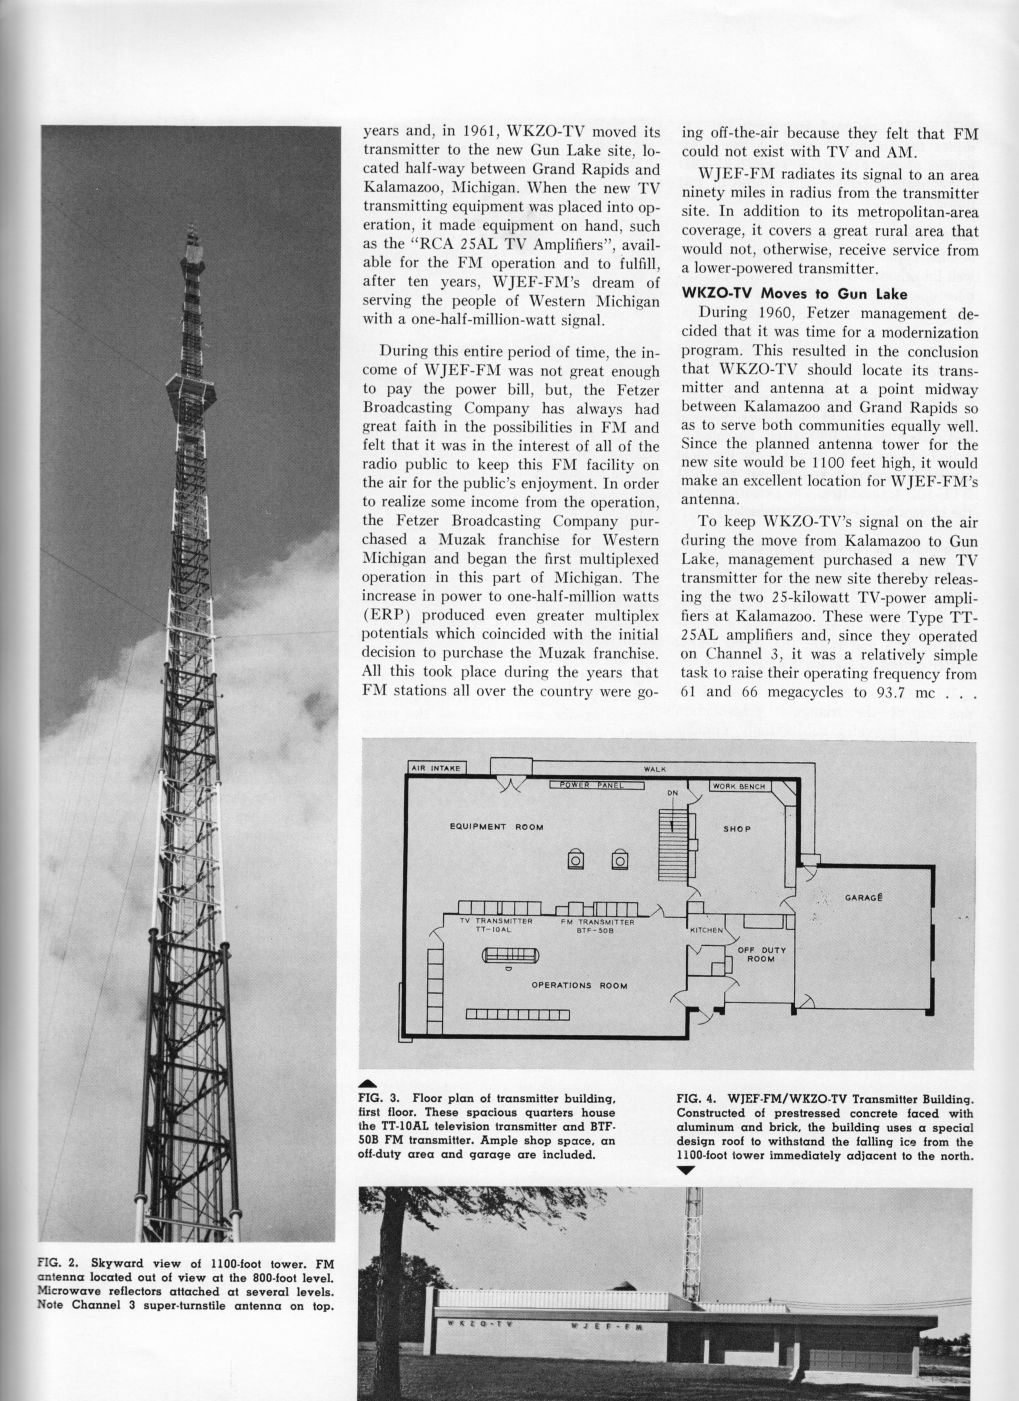 WJEF-FM...Stereo Half-Million-Watts, page 2